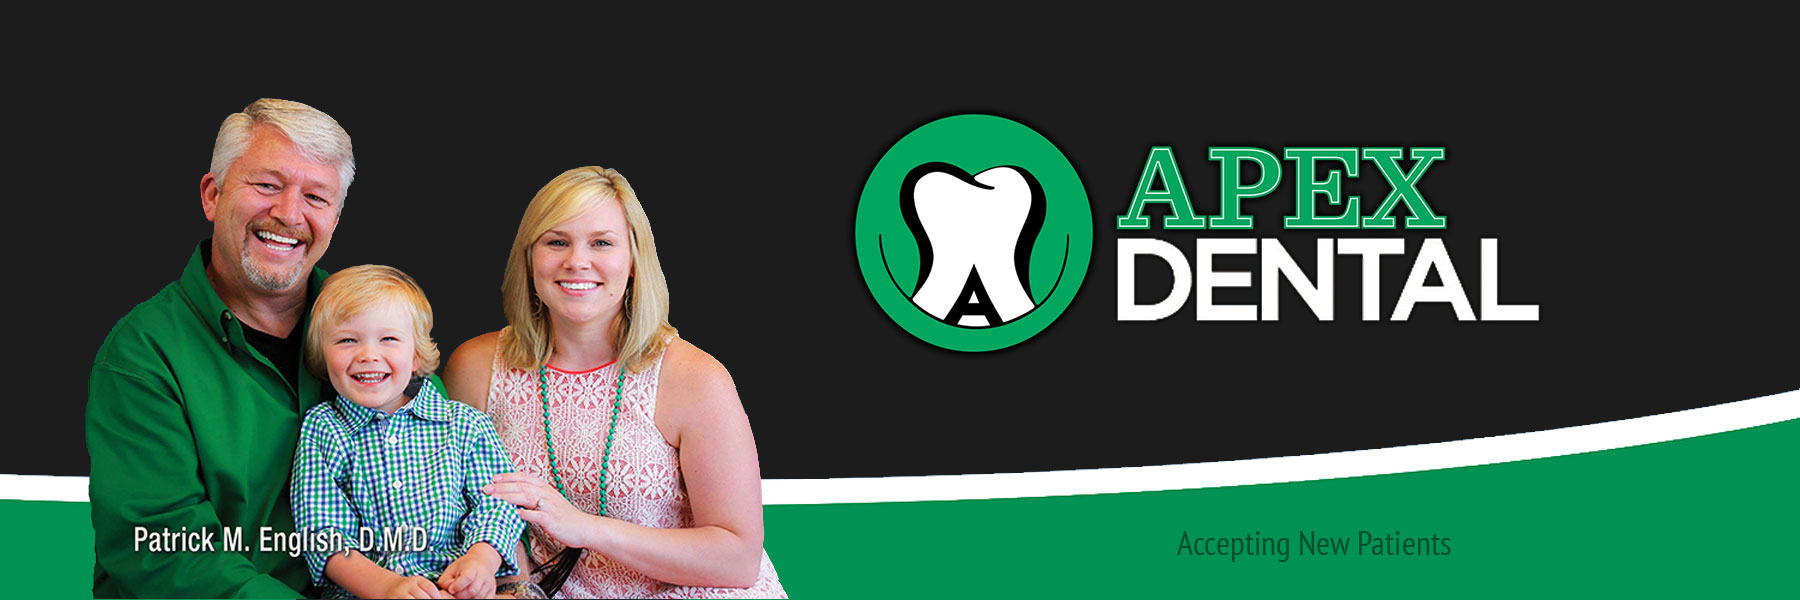 billboard-dentist-madison-al